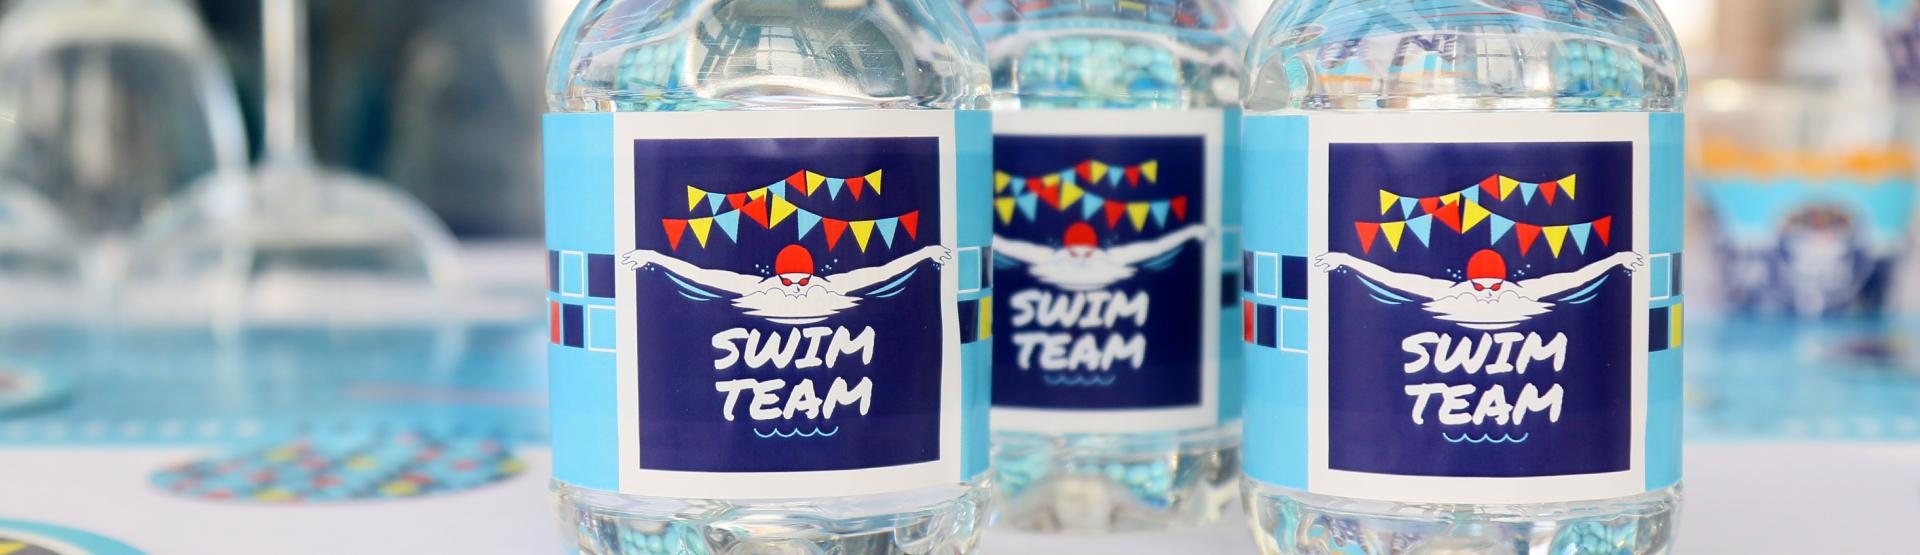 Making Waves - Swim Team - Party Ideas